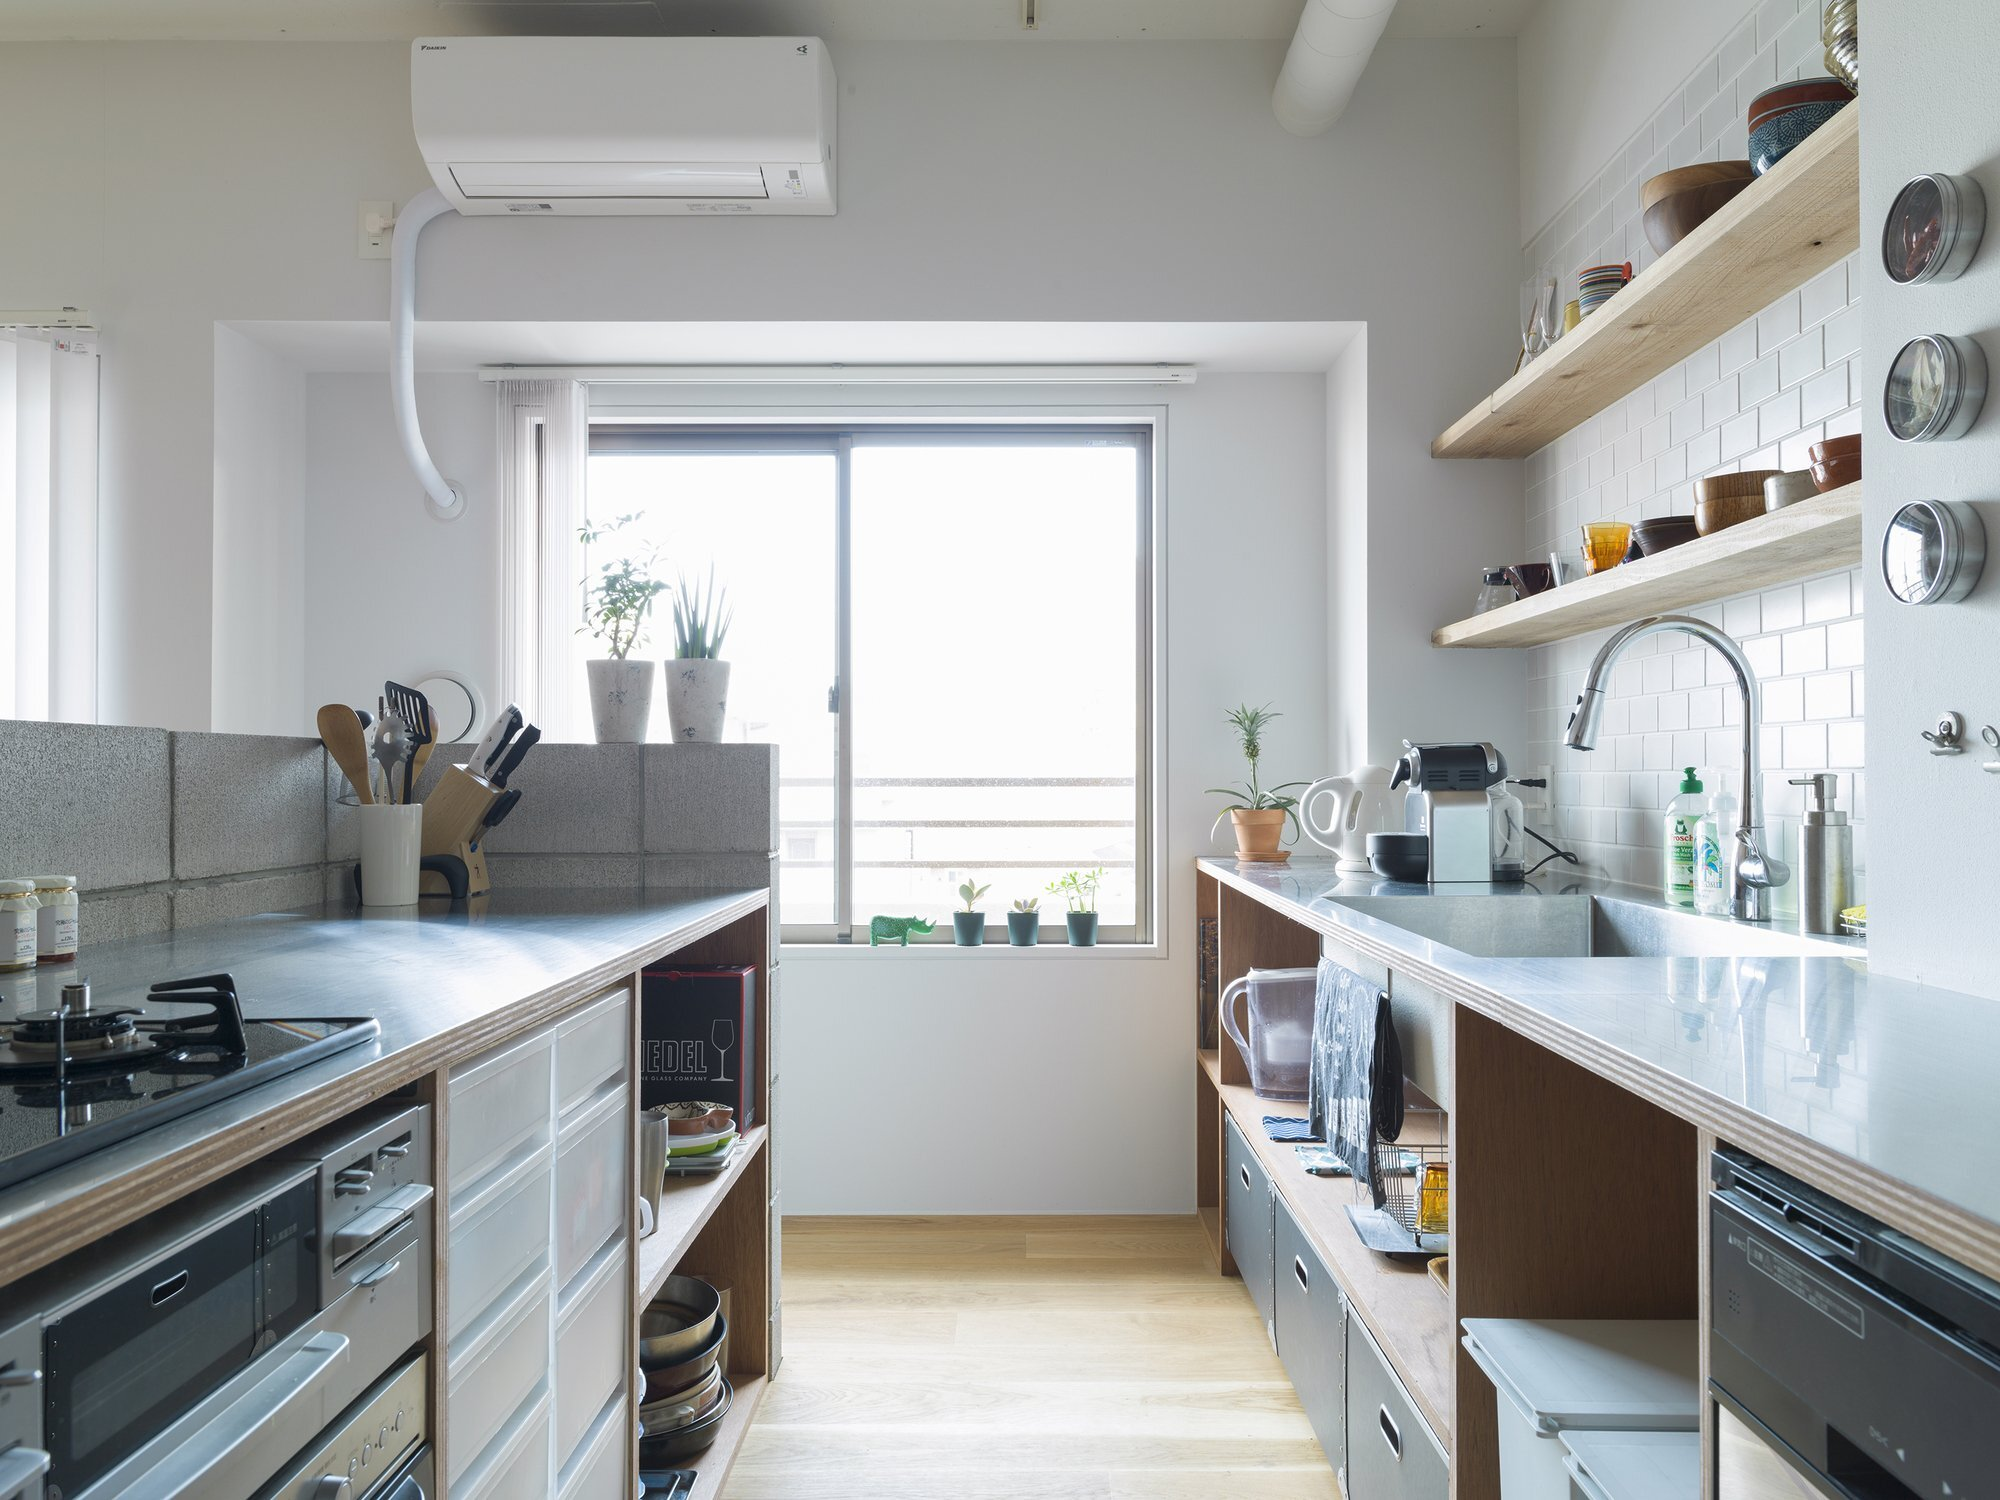 J House - Domino Architects - Japan - Kitchen - Humble Homes